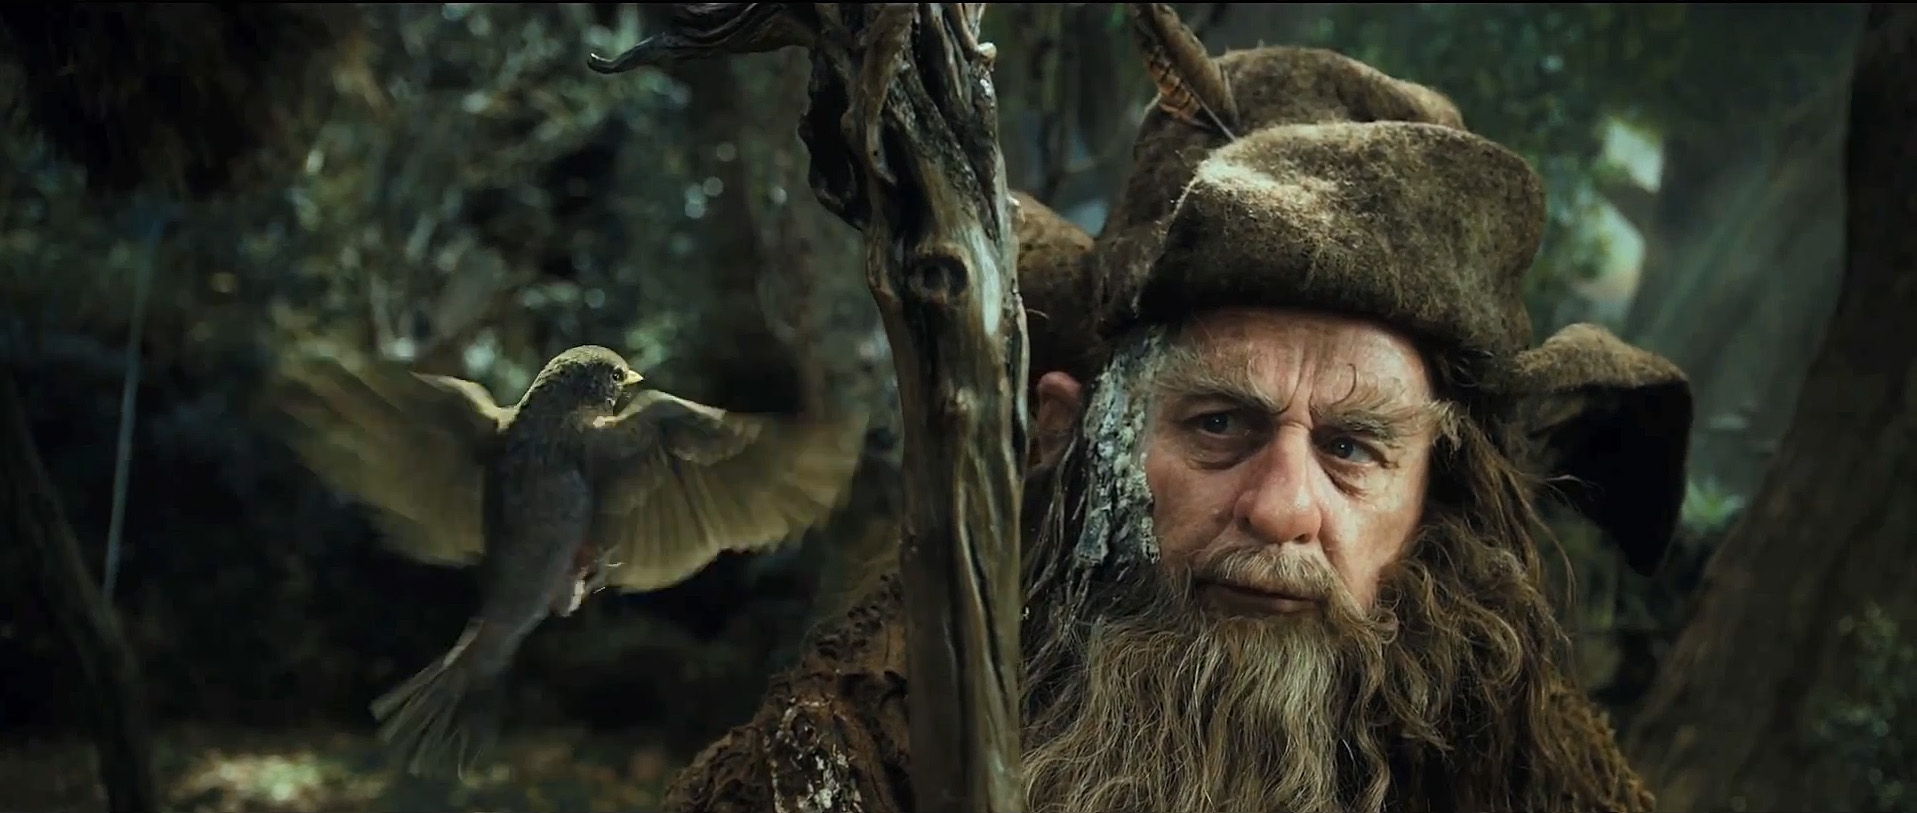 Radagast the Brown the Hobbit an Unexpected Journey Tolkien Peter Jackson Sylvester McCoy